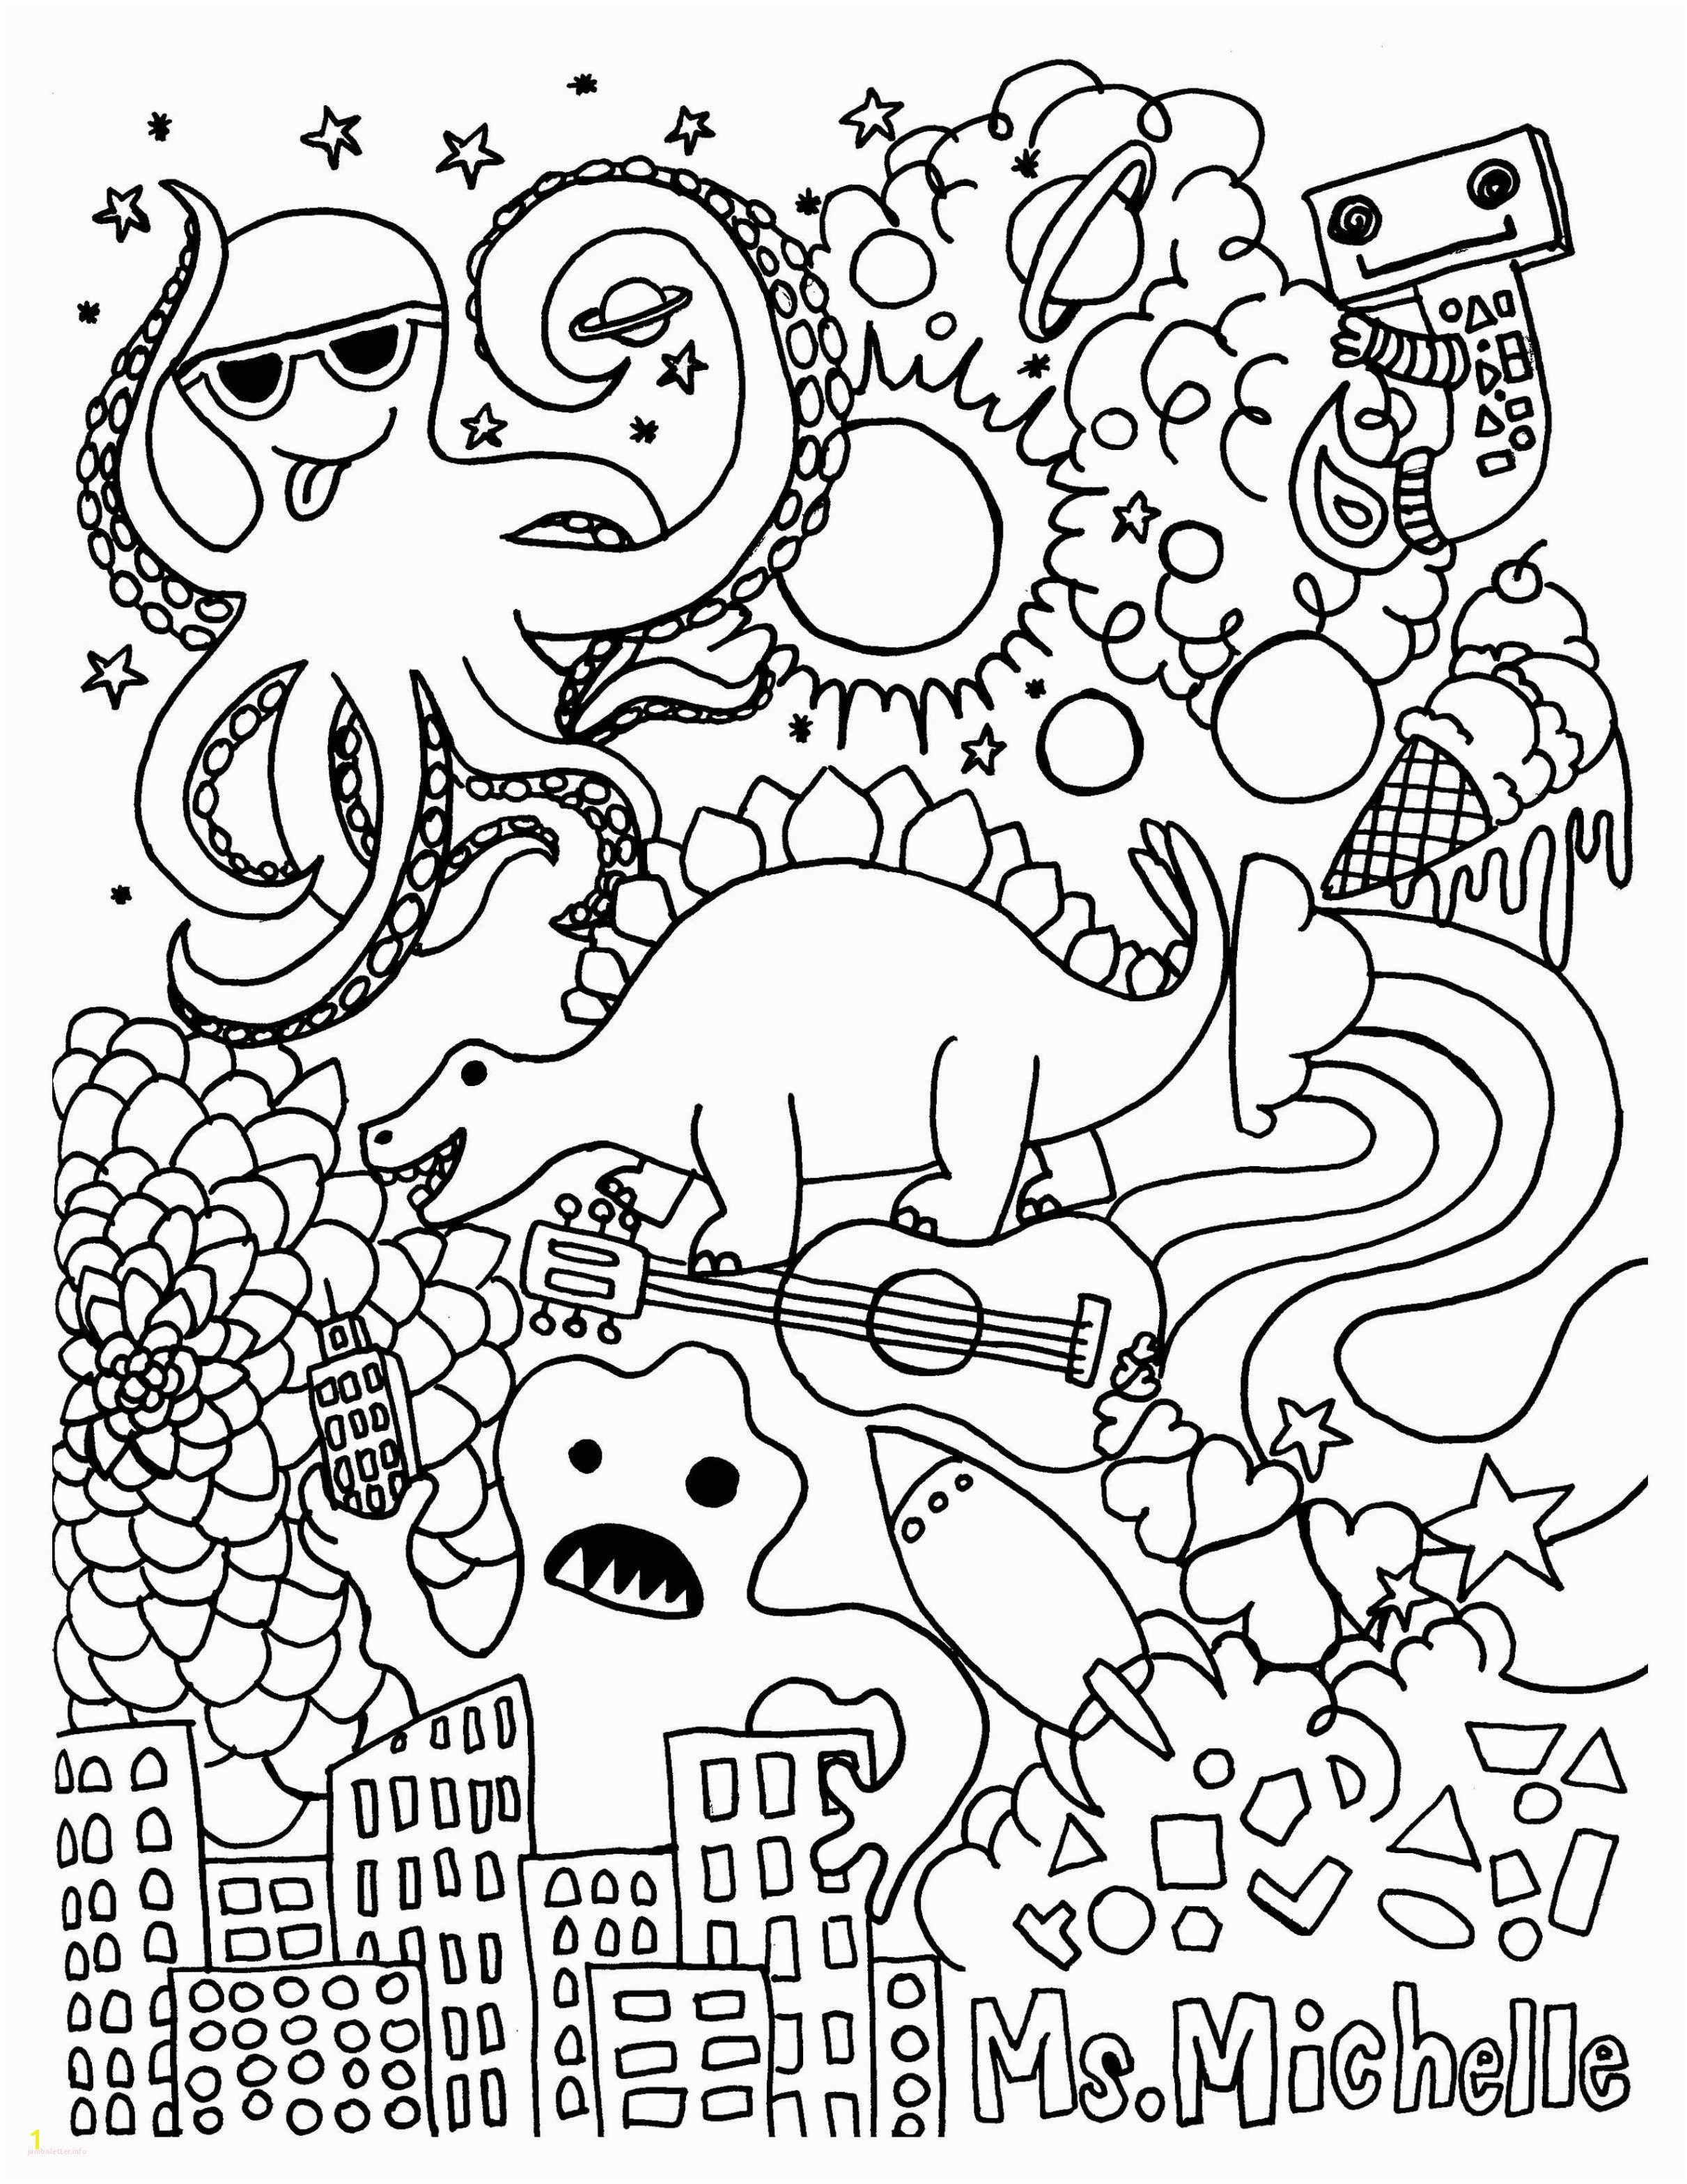 Liahona Coloring Page Free Coloring Pages Christmas Tree